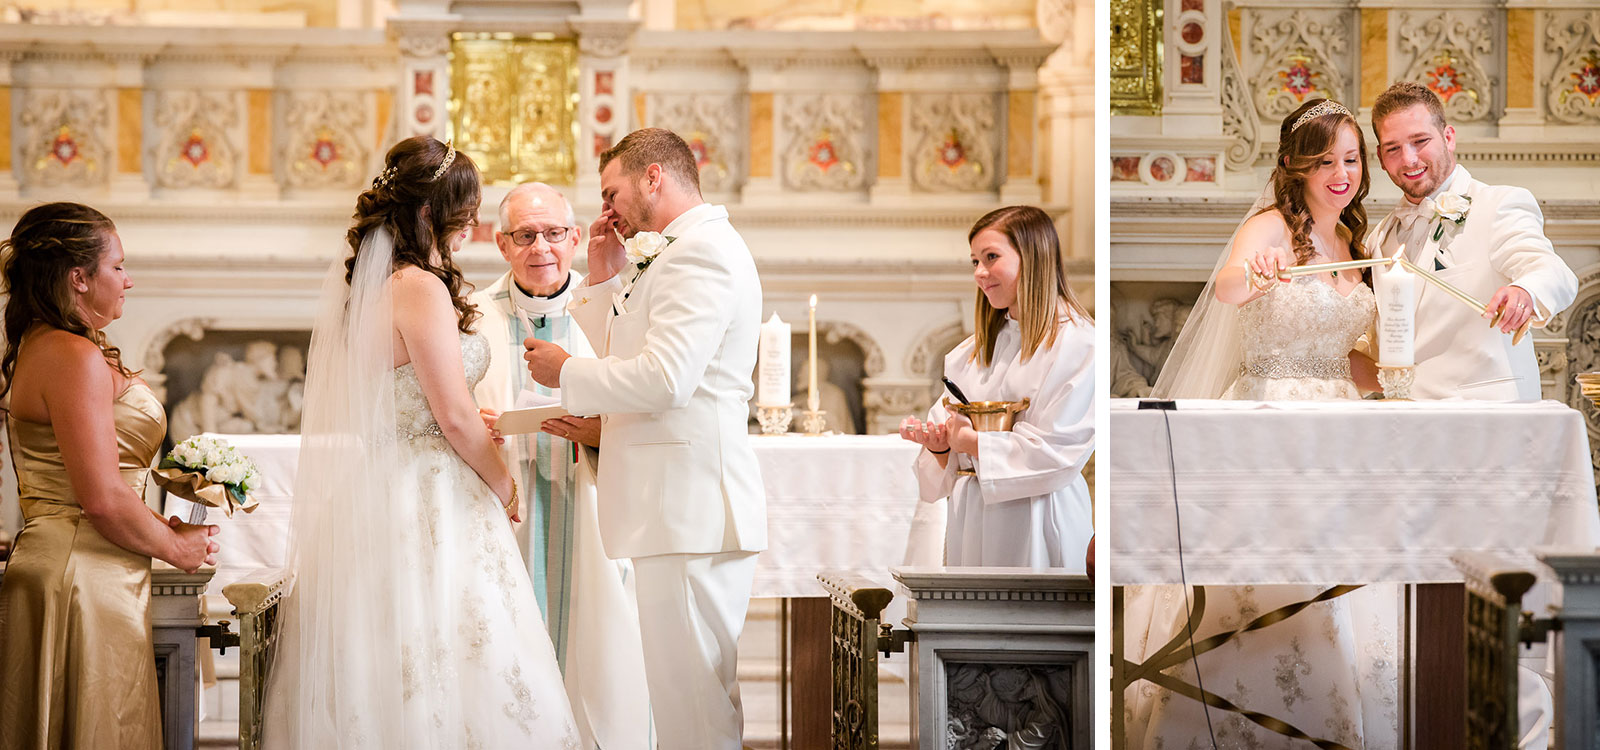 Eric_and_Christy_Photography_Blog_Wedding_Eva_Andrew-12-13